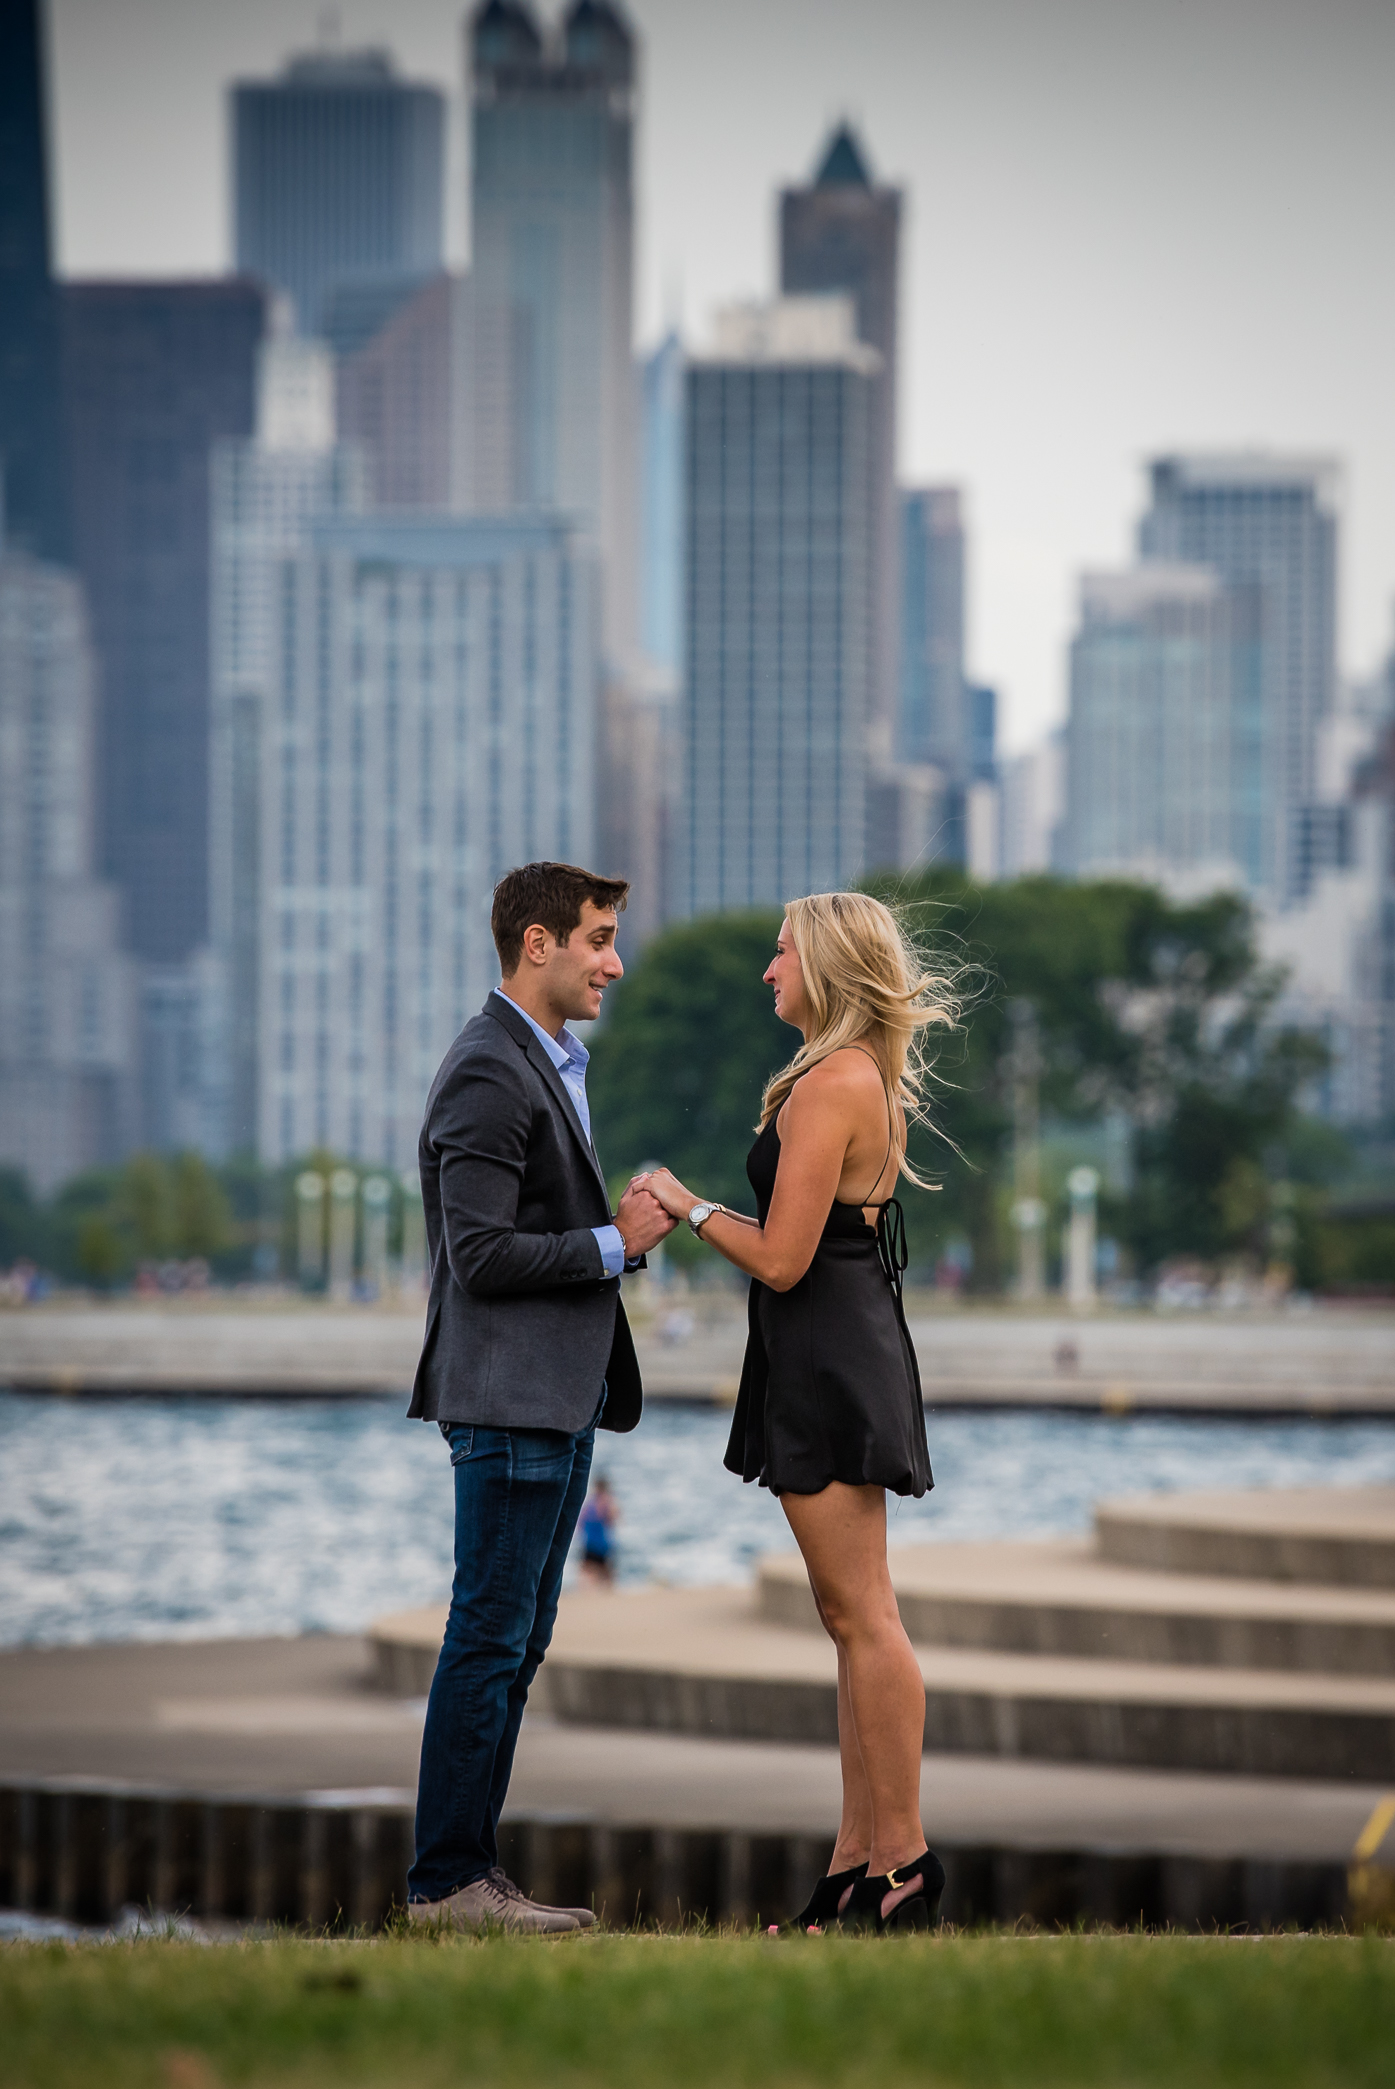 heather hackney photography www.heatherhackney.com chicago engagement chicago sunset proposal diversy harbor chicago family photographer-.jpg